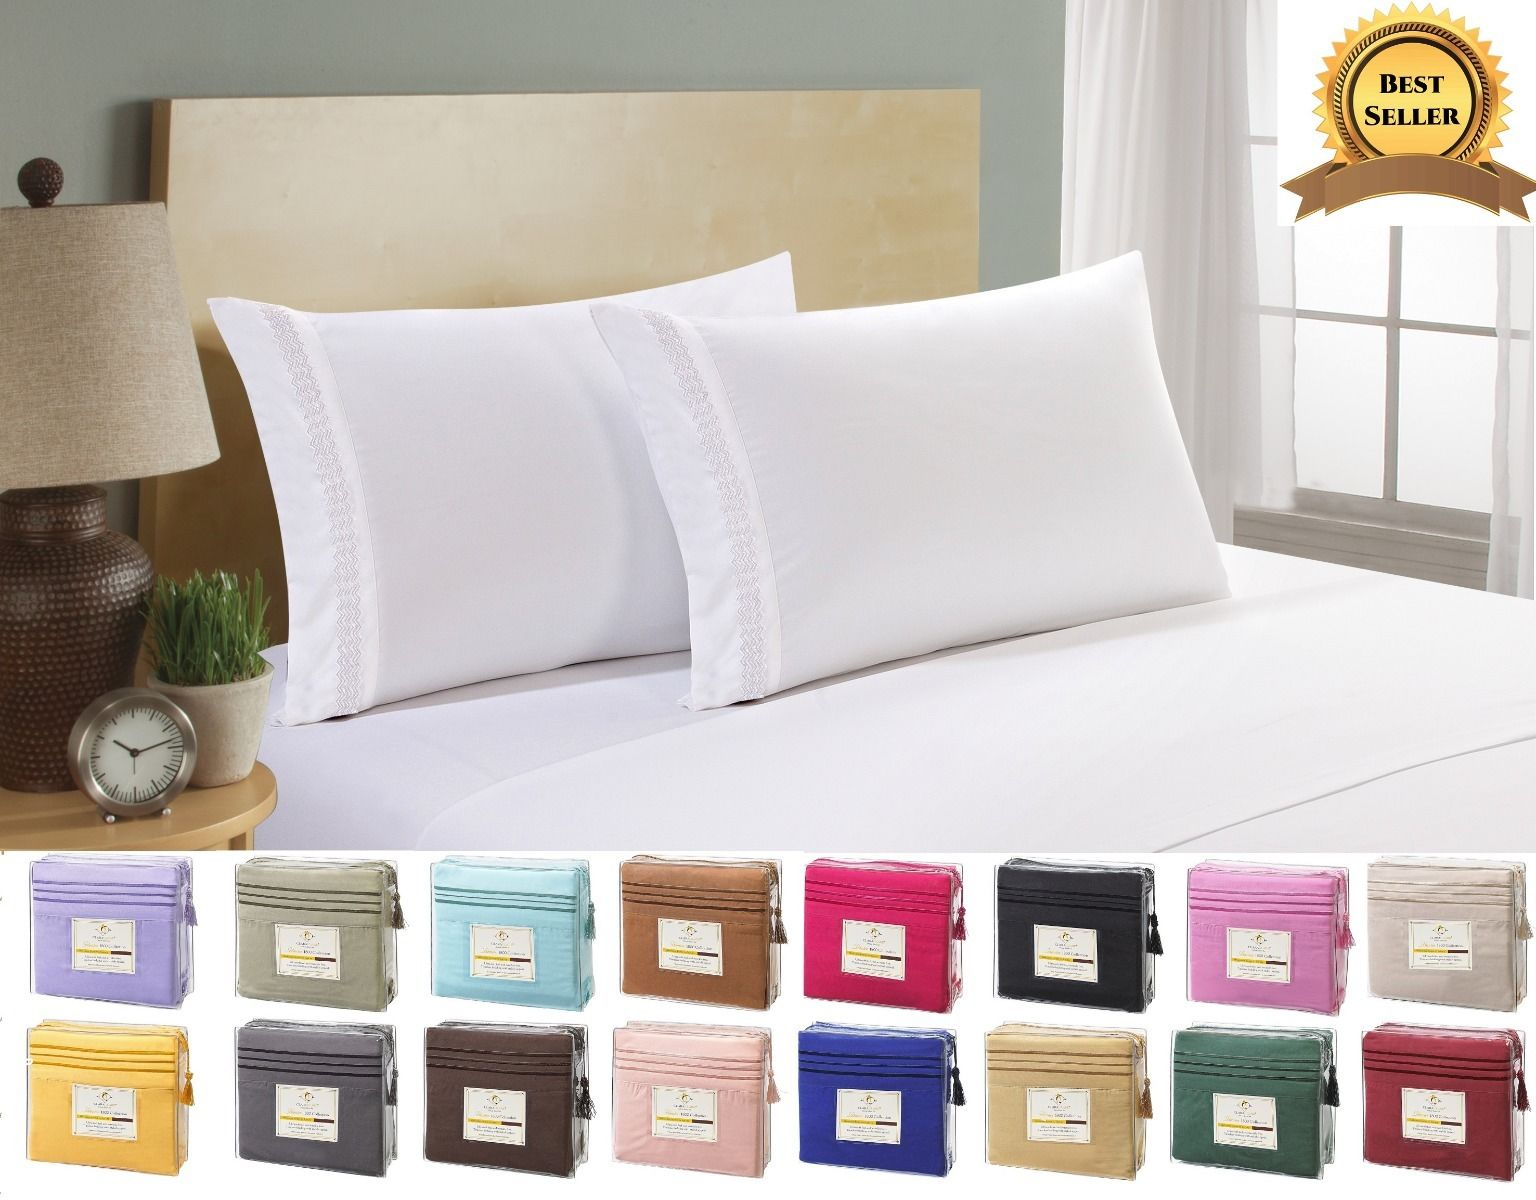 Egyptian Comfort 1800 Count 4 pc Bed Sheet Sale $10.49  Free Shipping from eBay